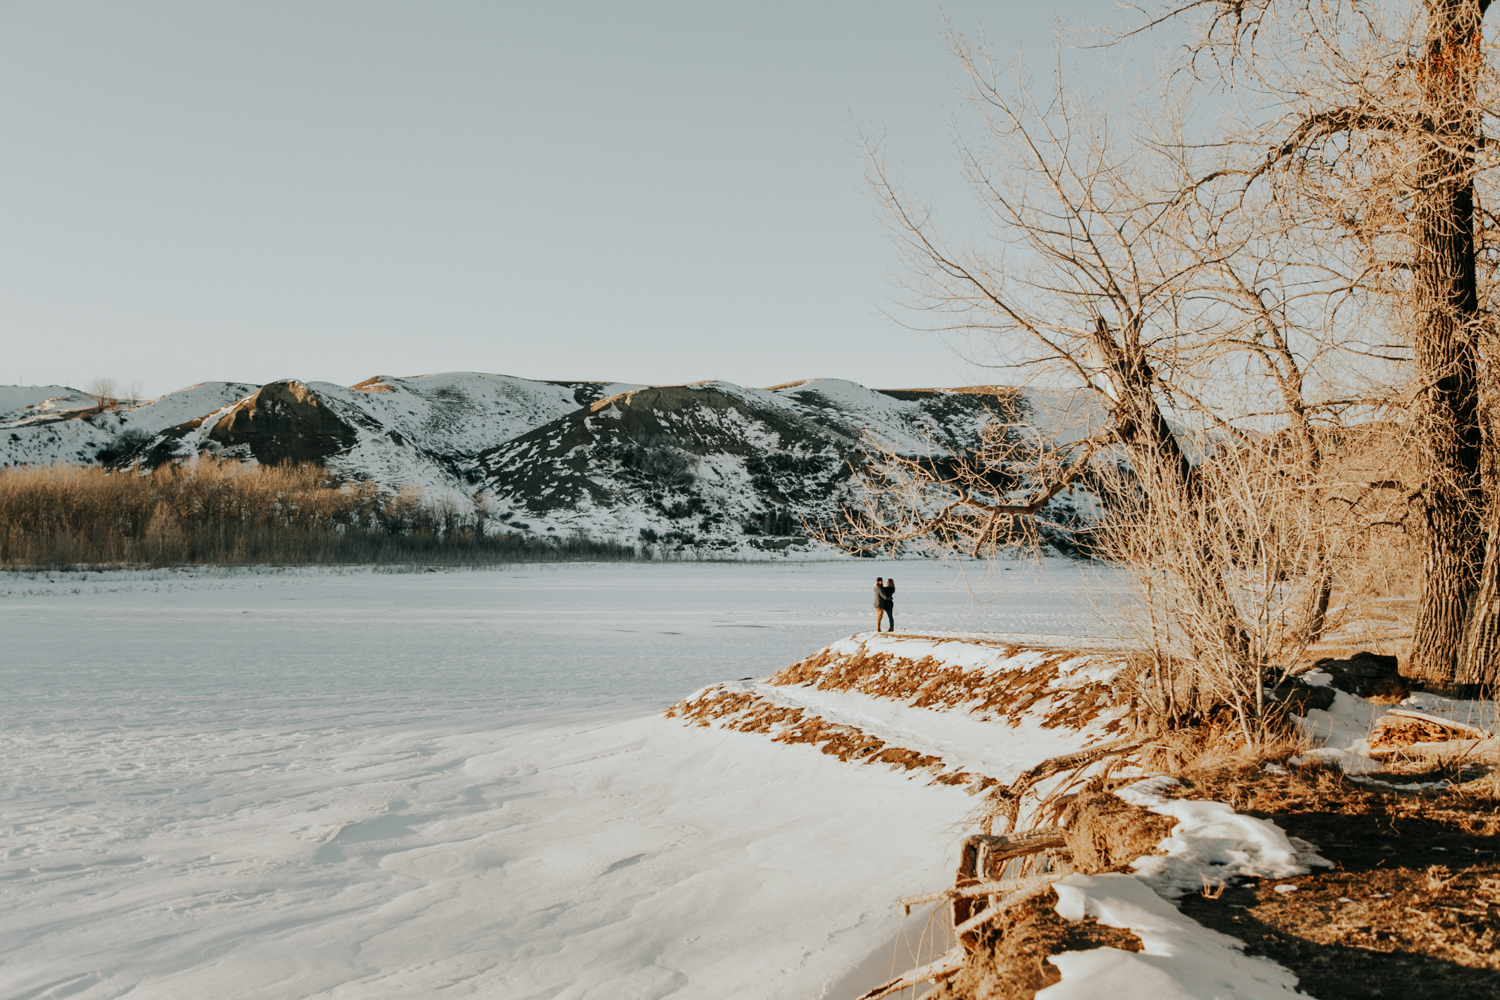 lethbridge-photography-love-and-be-loved-photographer-dan-tynnea-engagement-picture-image-photo-53.jpg